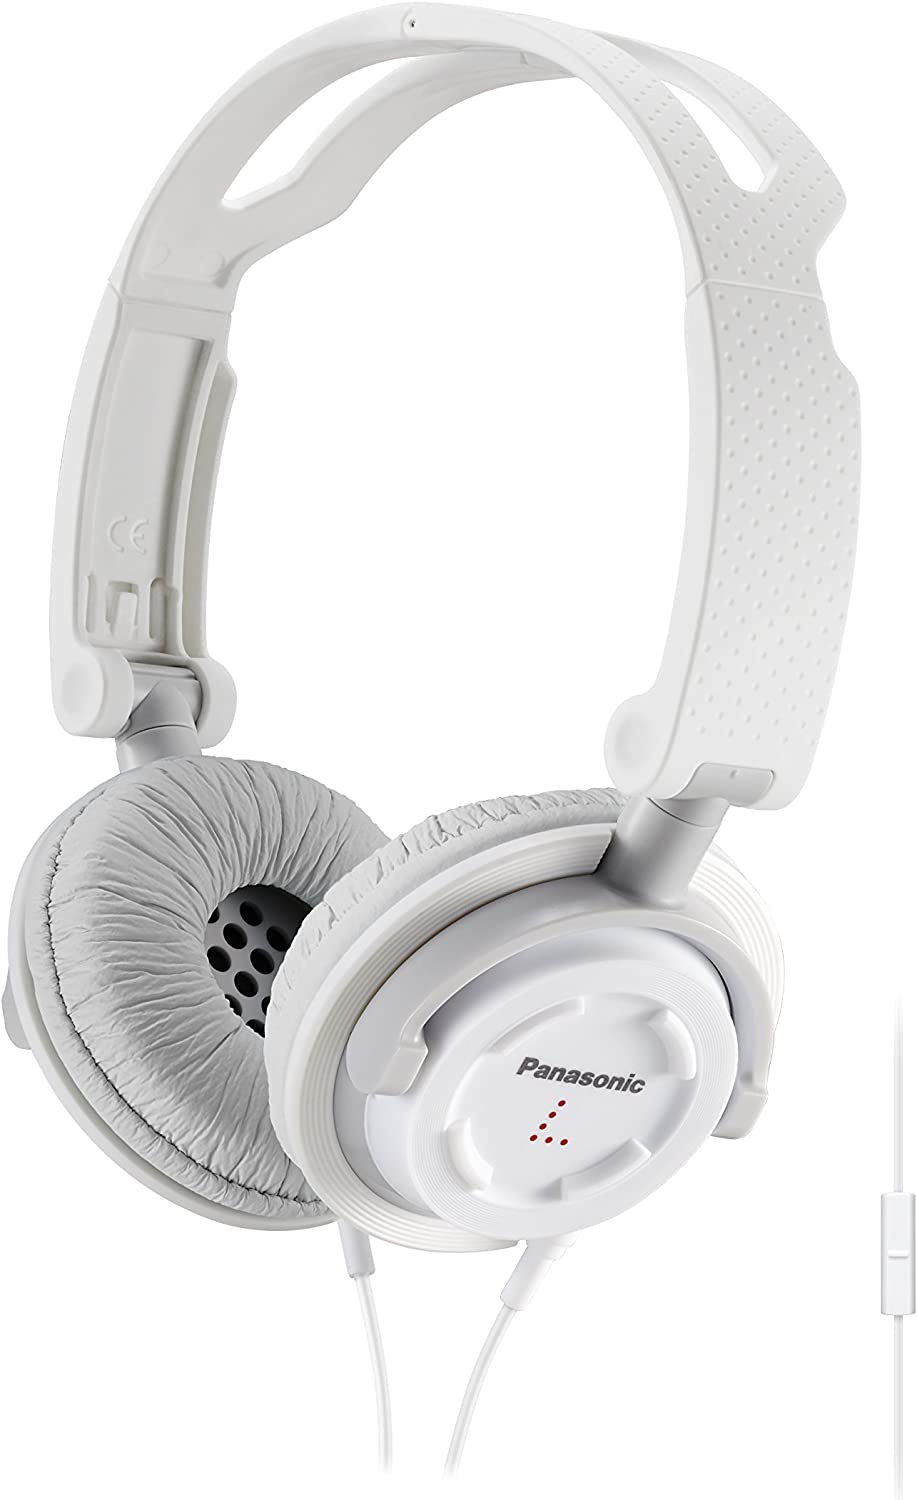 Panasonic FOLDZ On-Ear Stereo Headphones with Mic/Controller RP-DJS150M-W (White) Integrated